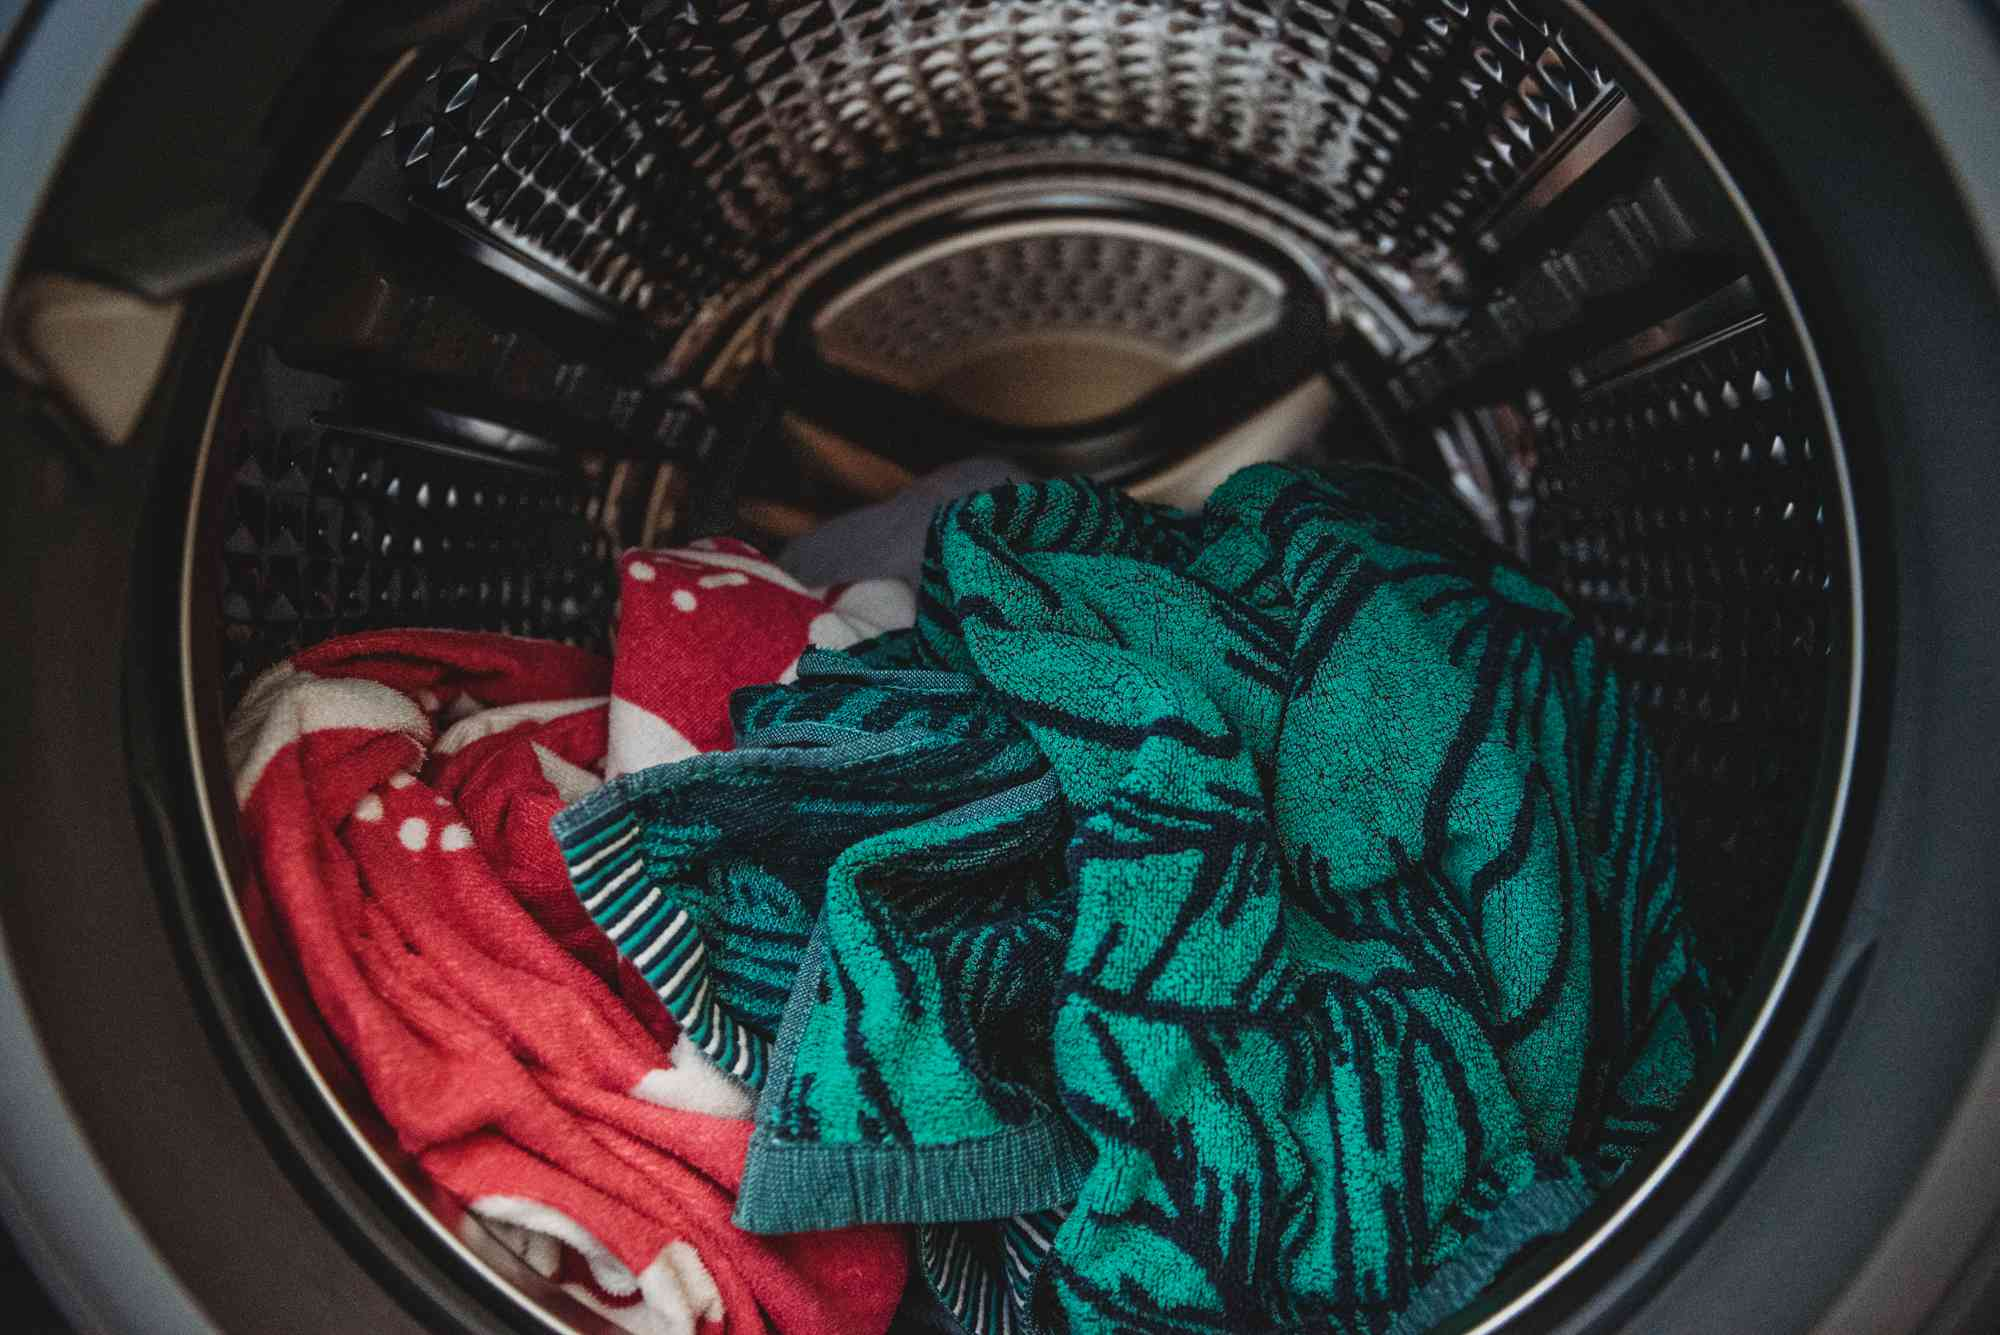 loading towels into the washer